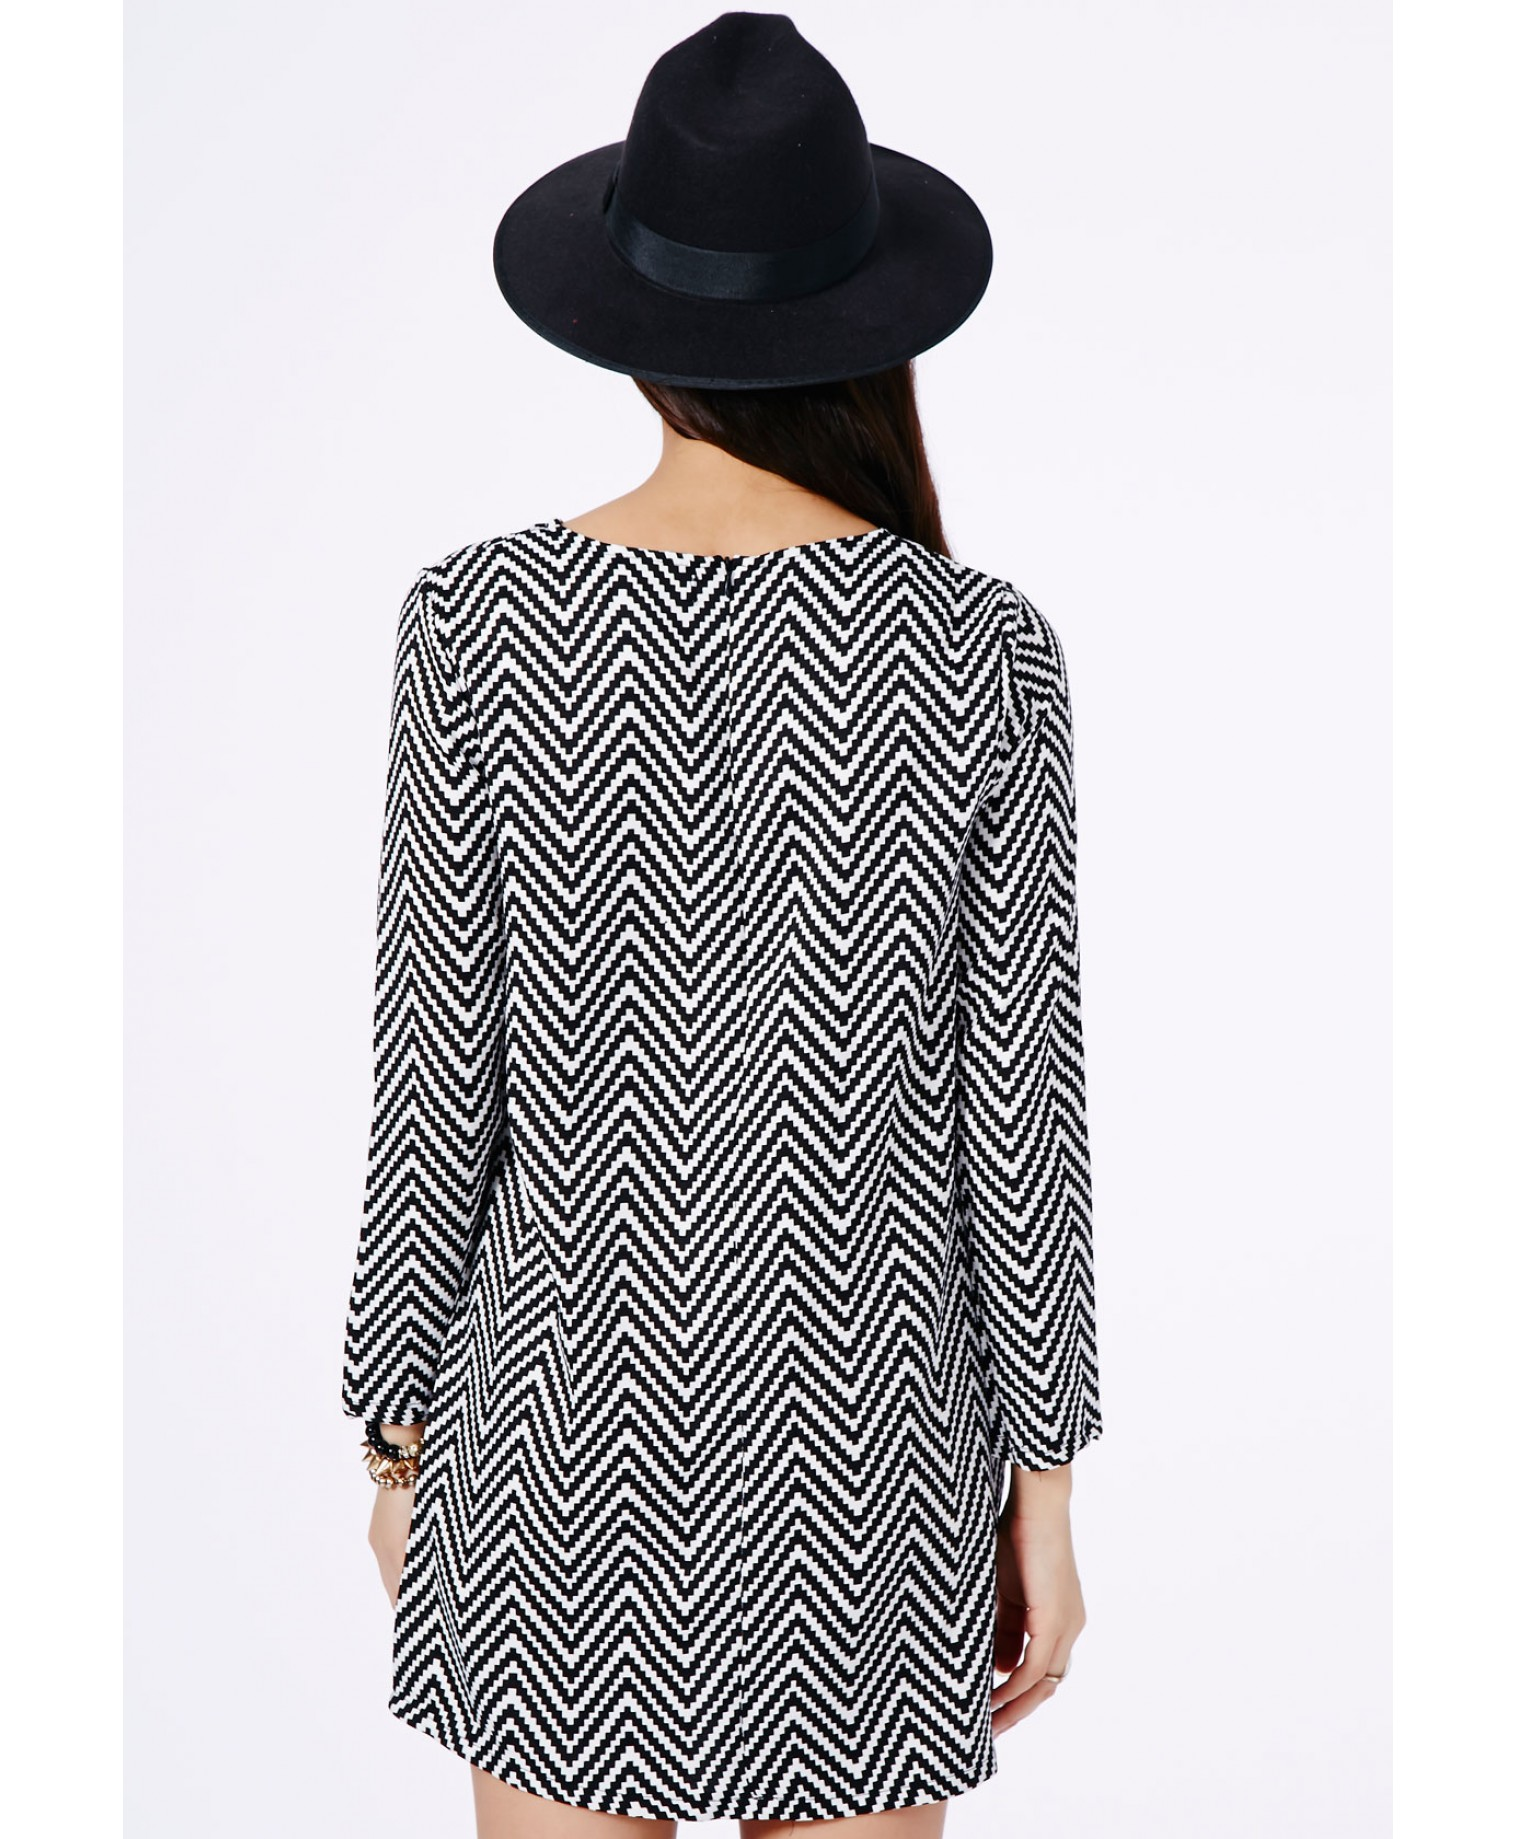 Missguided - Kicia Monochrome Chevron Shift Dress